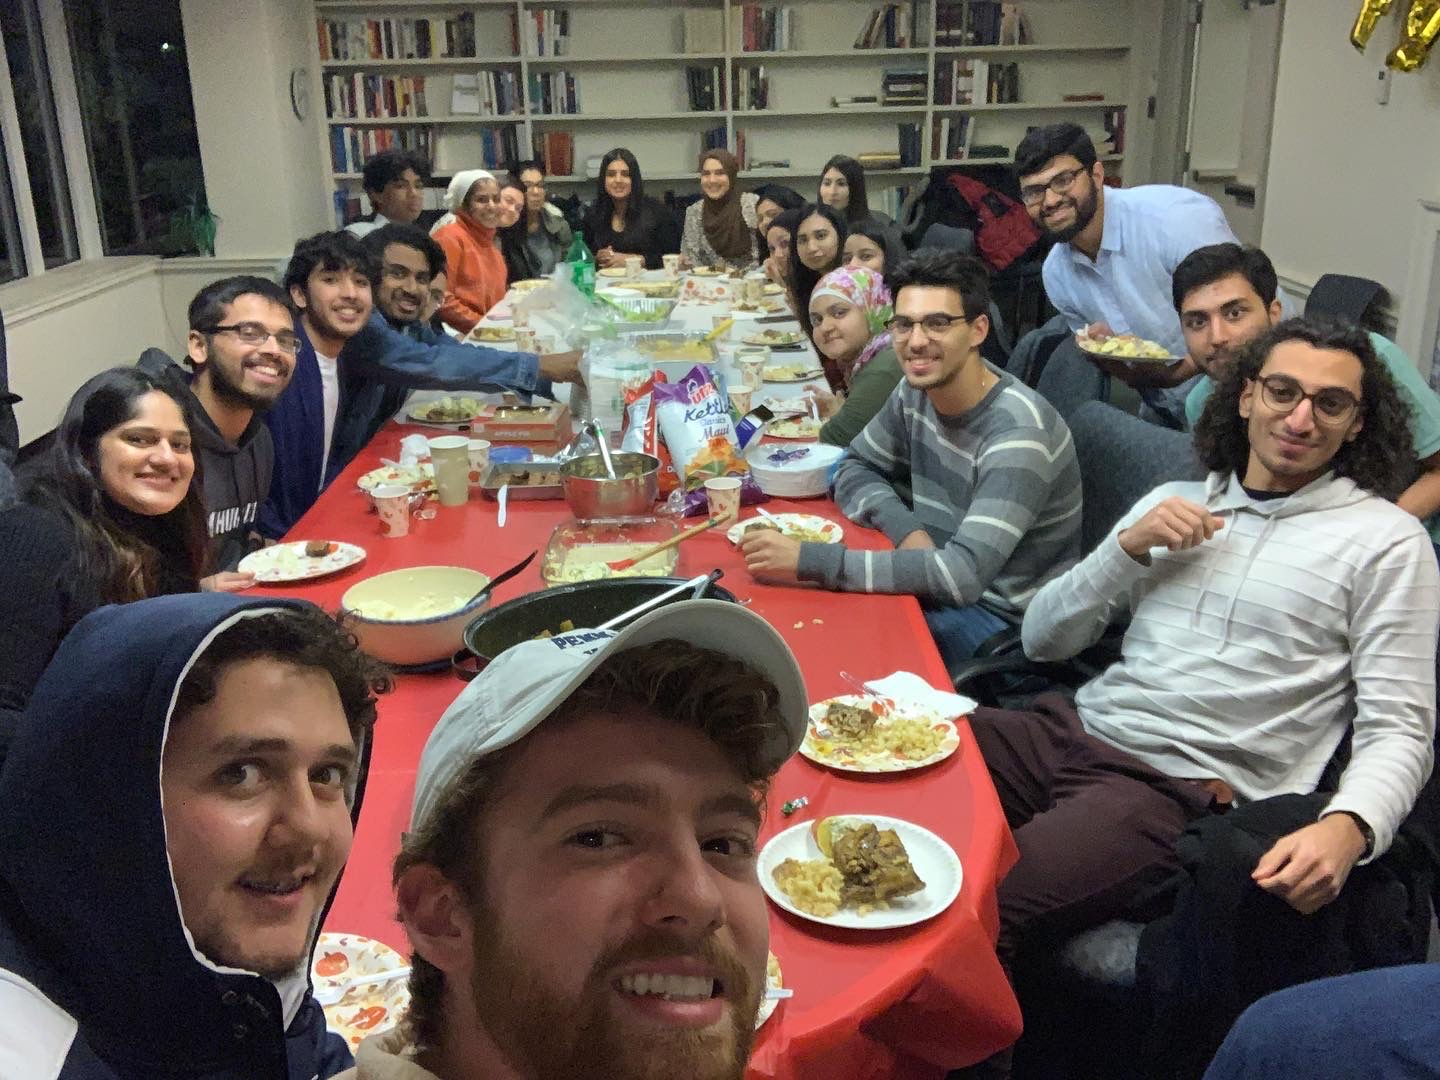 This is a photo of our most recent Friendsgiving event. We're all around the table ready to eat!